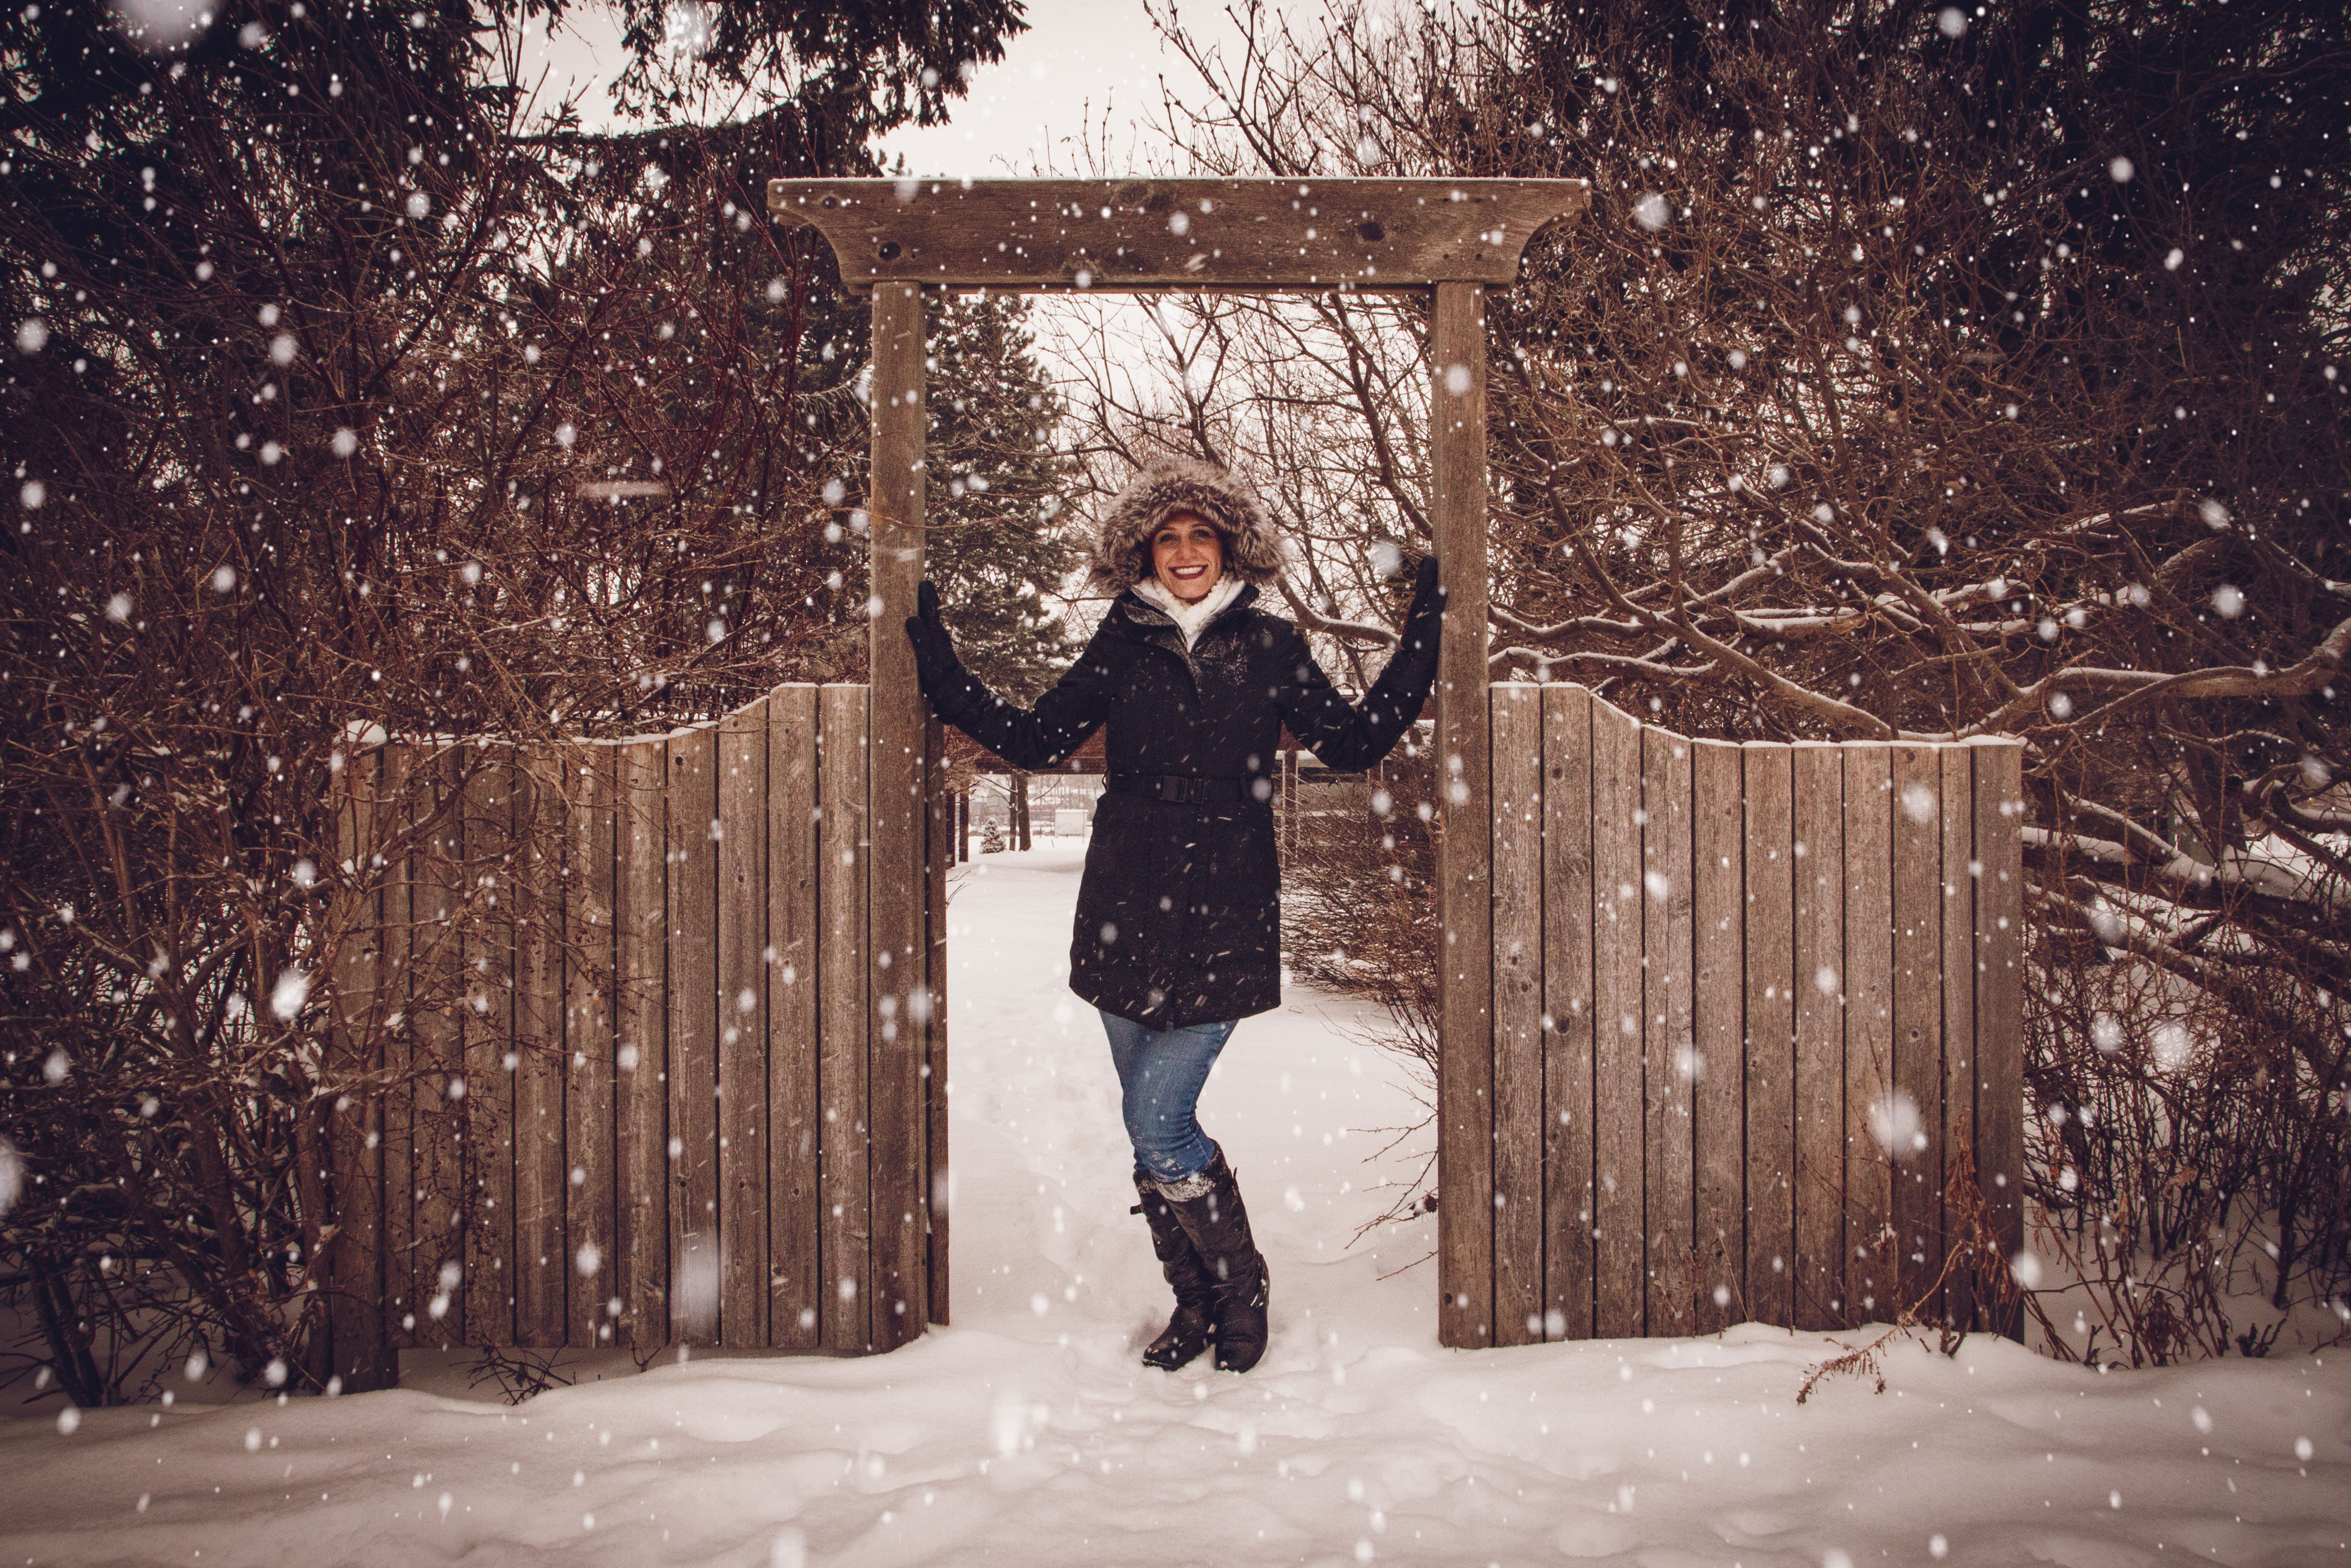 Woman in black coat beside fence during snow photo